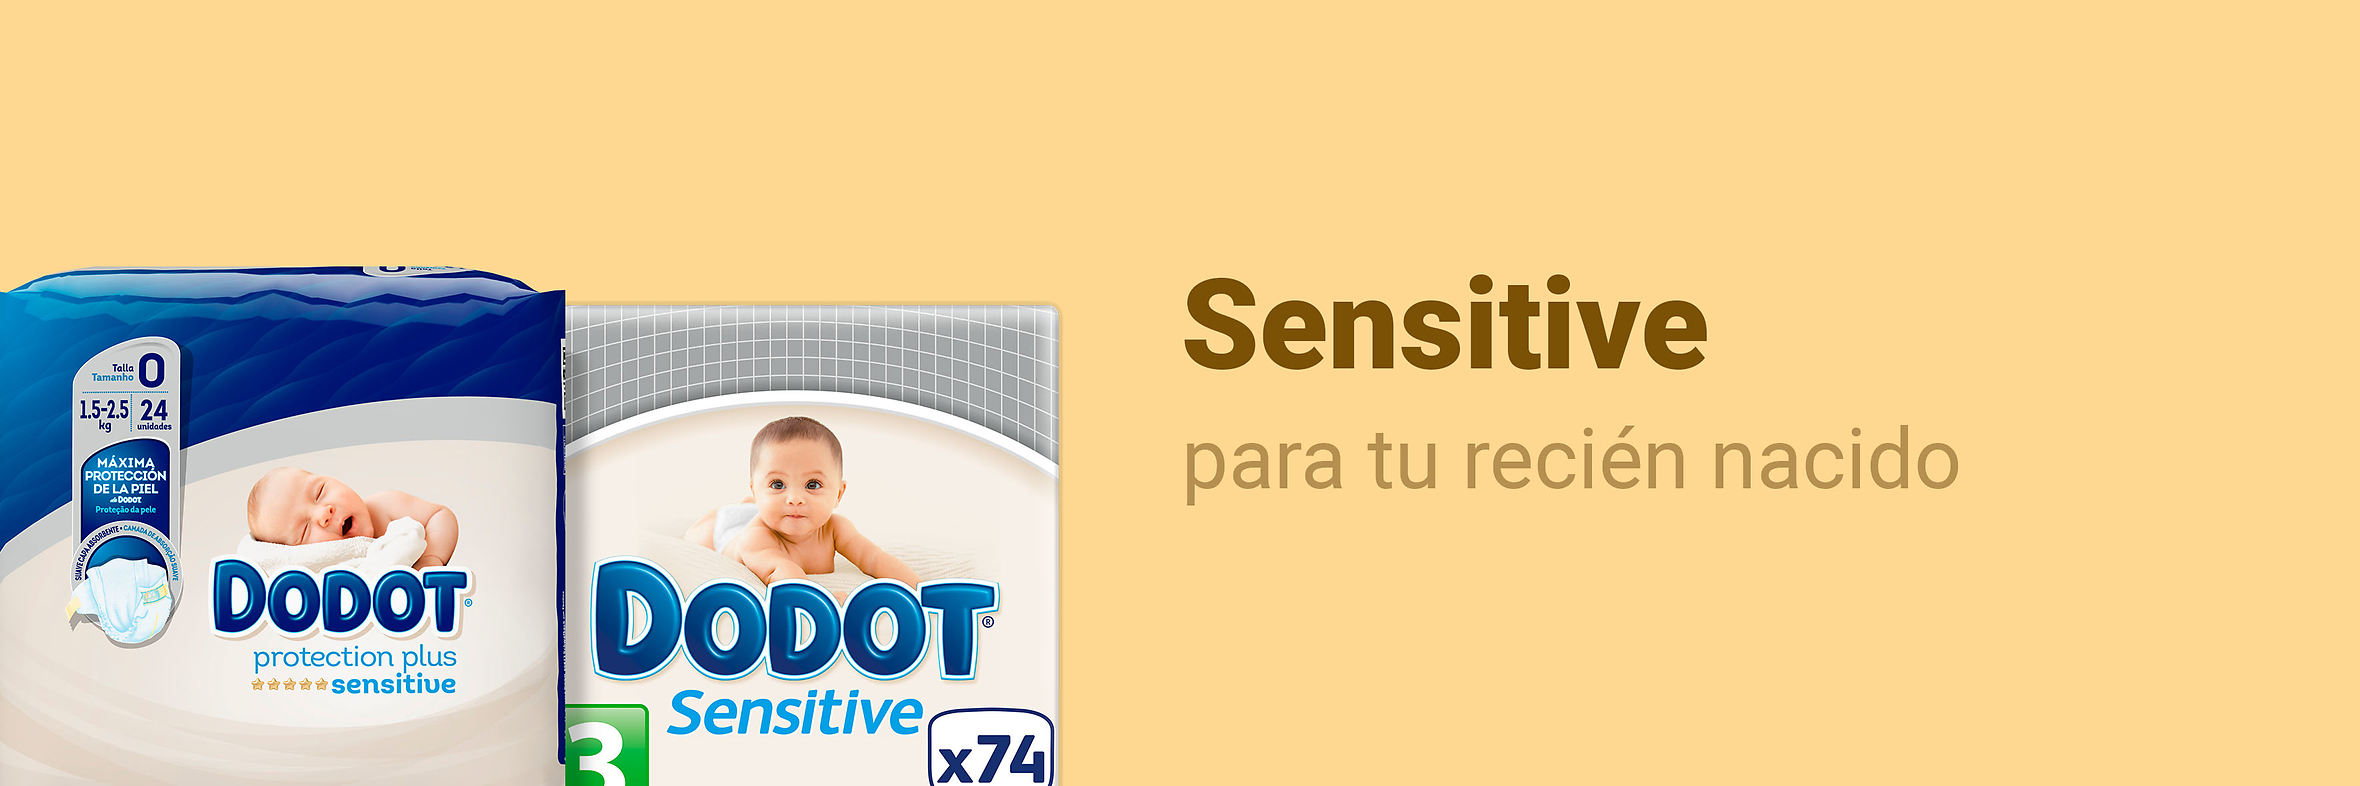 Dodot Sensitive